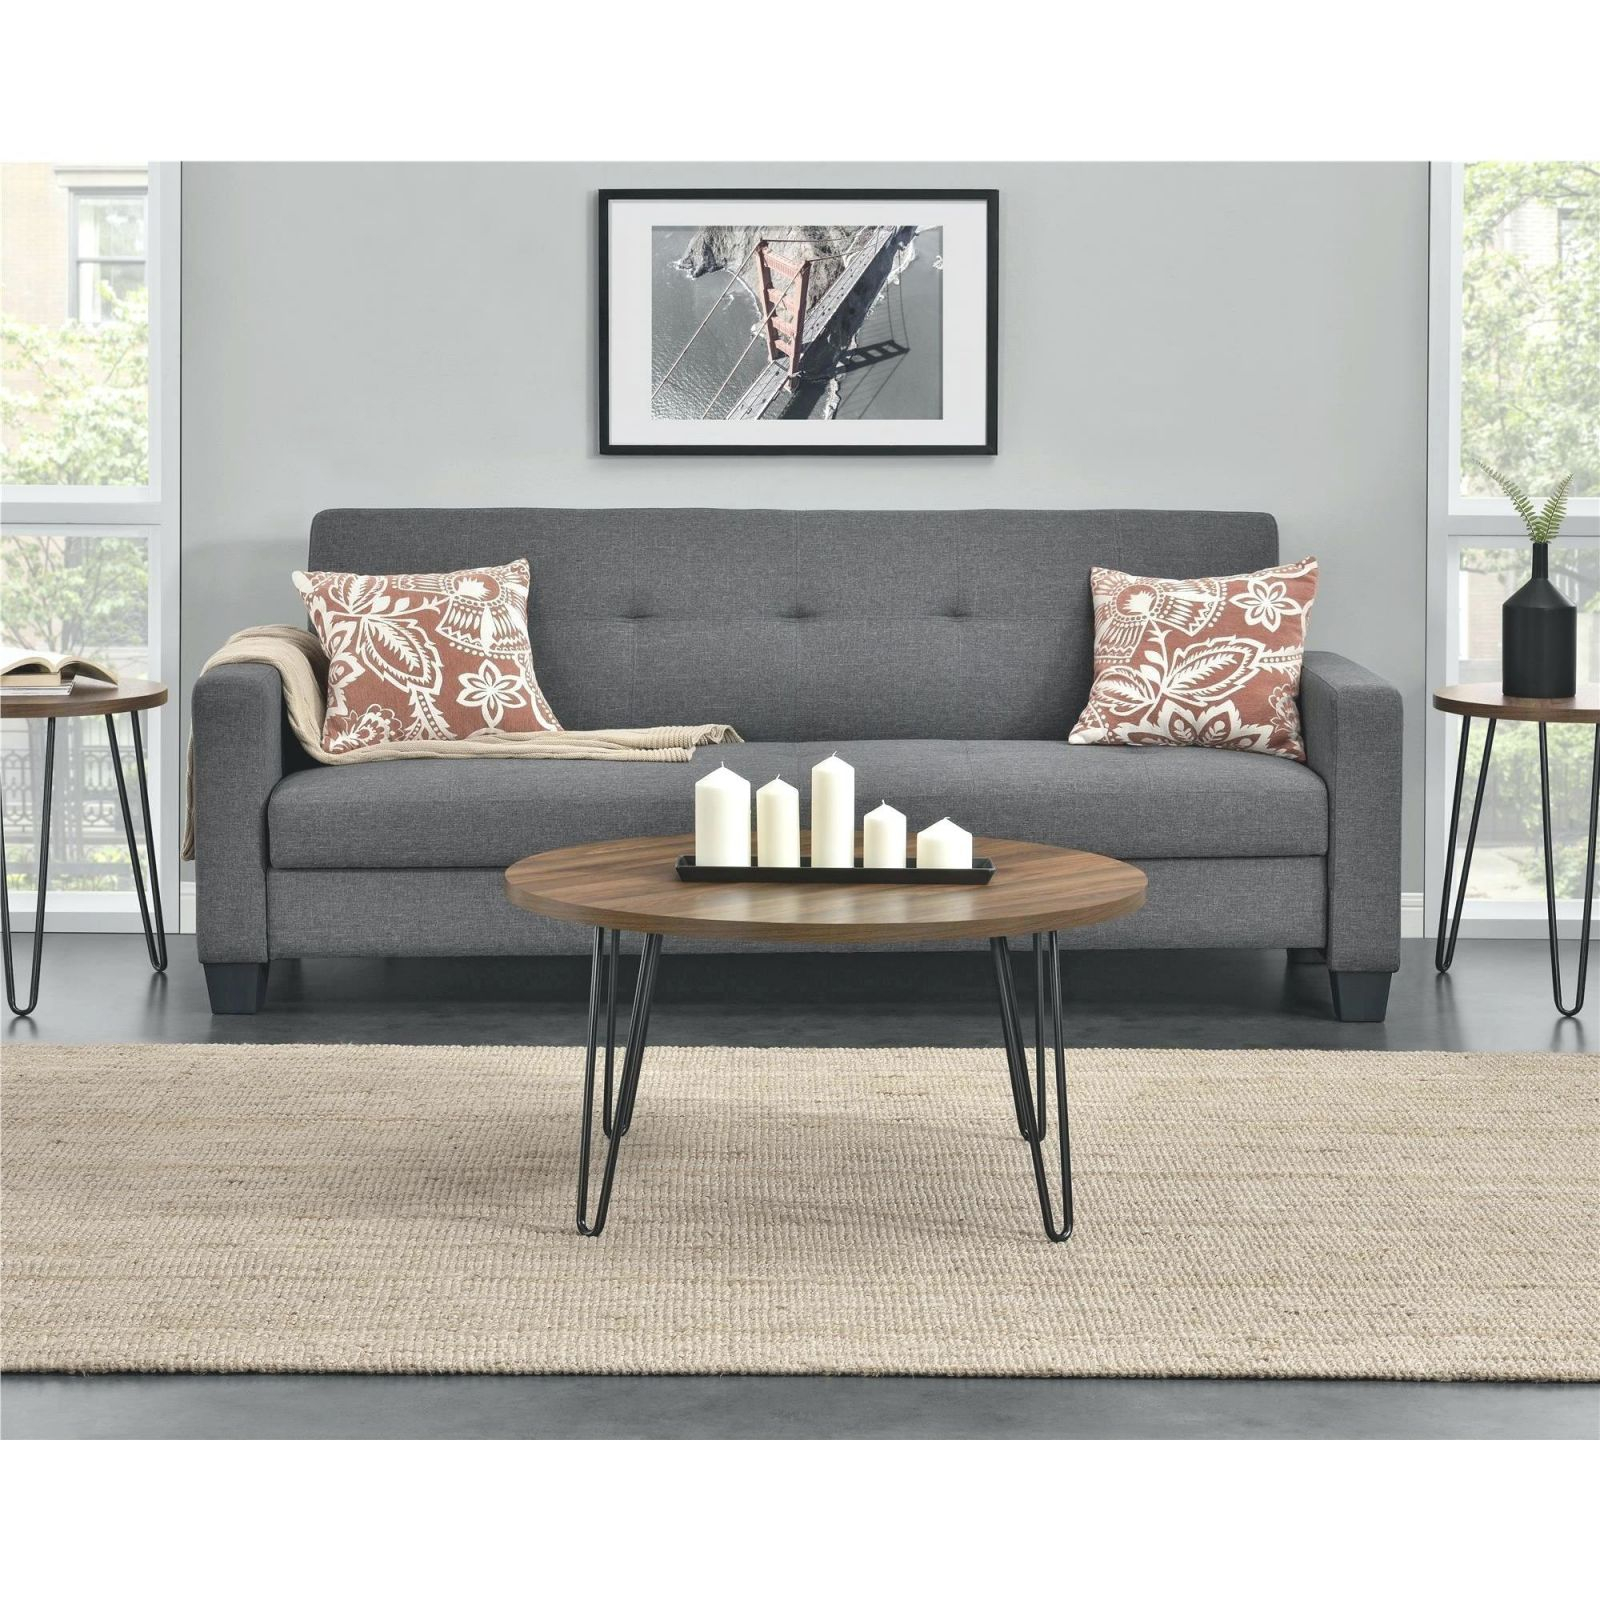 Contemporary Living Room Sets For – Cryptoracks.co with Unique Living Room Furniture Sets For Sale